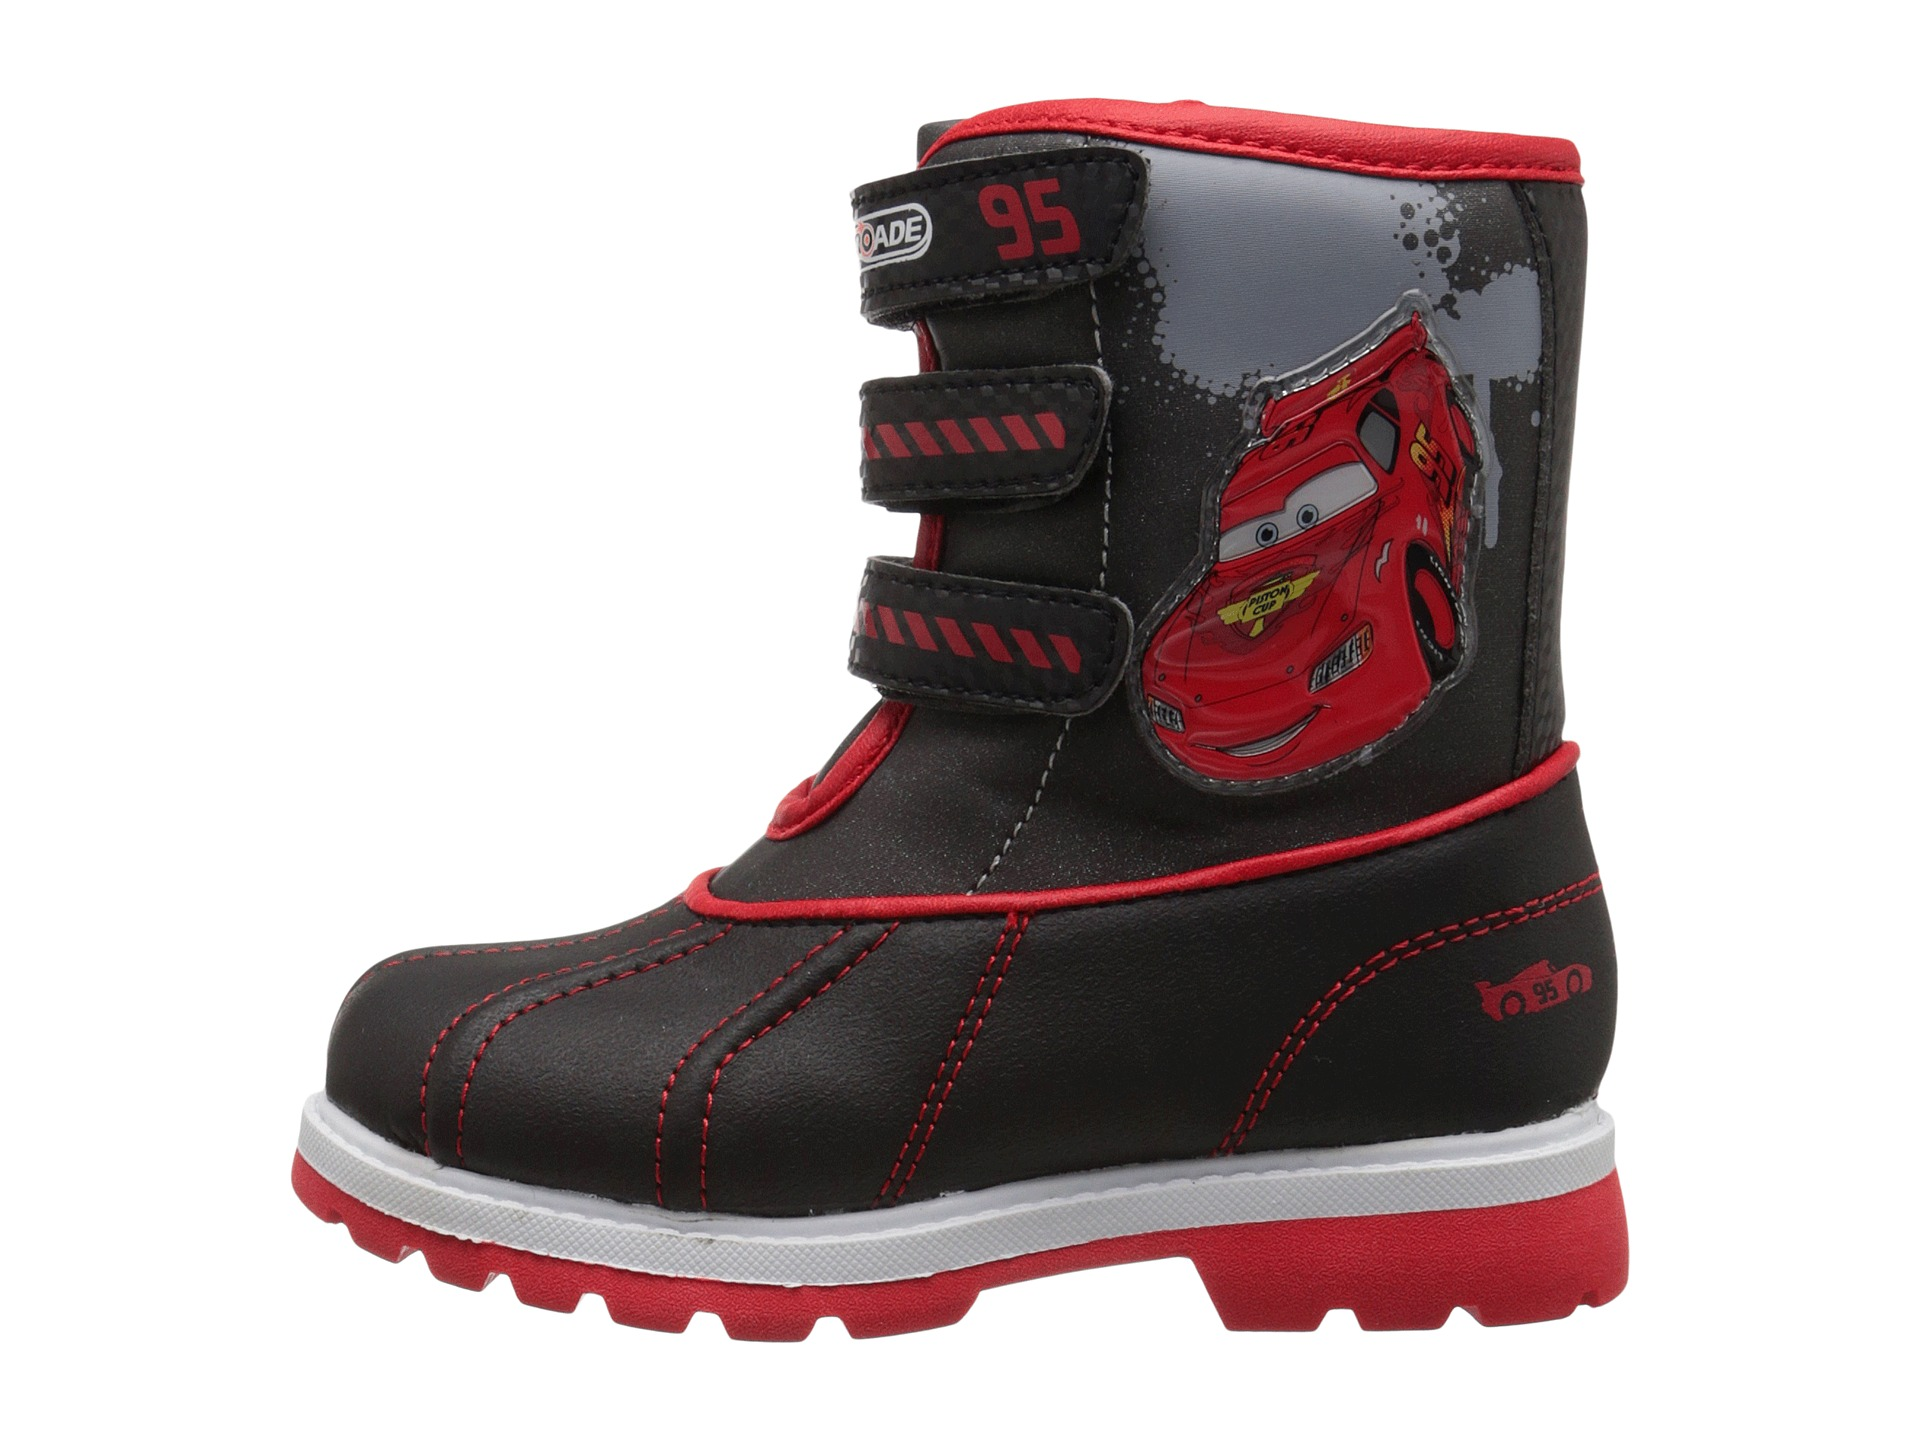 Josmo Kids Cars Snow Boots (Toddler/Little Kid) - Zappos.com Free ...